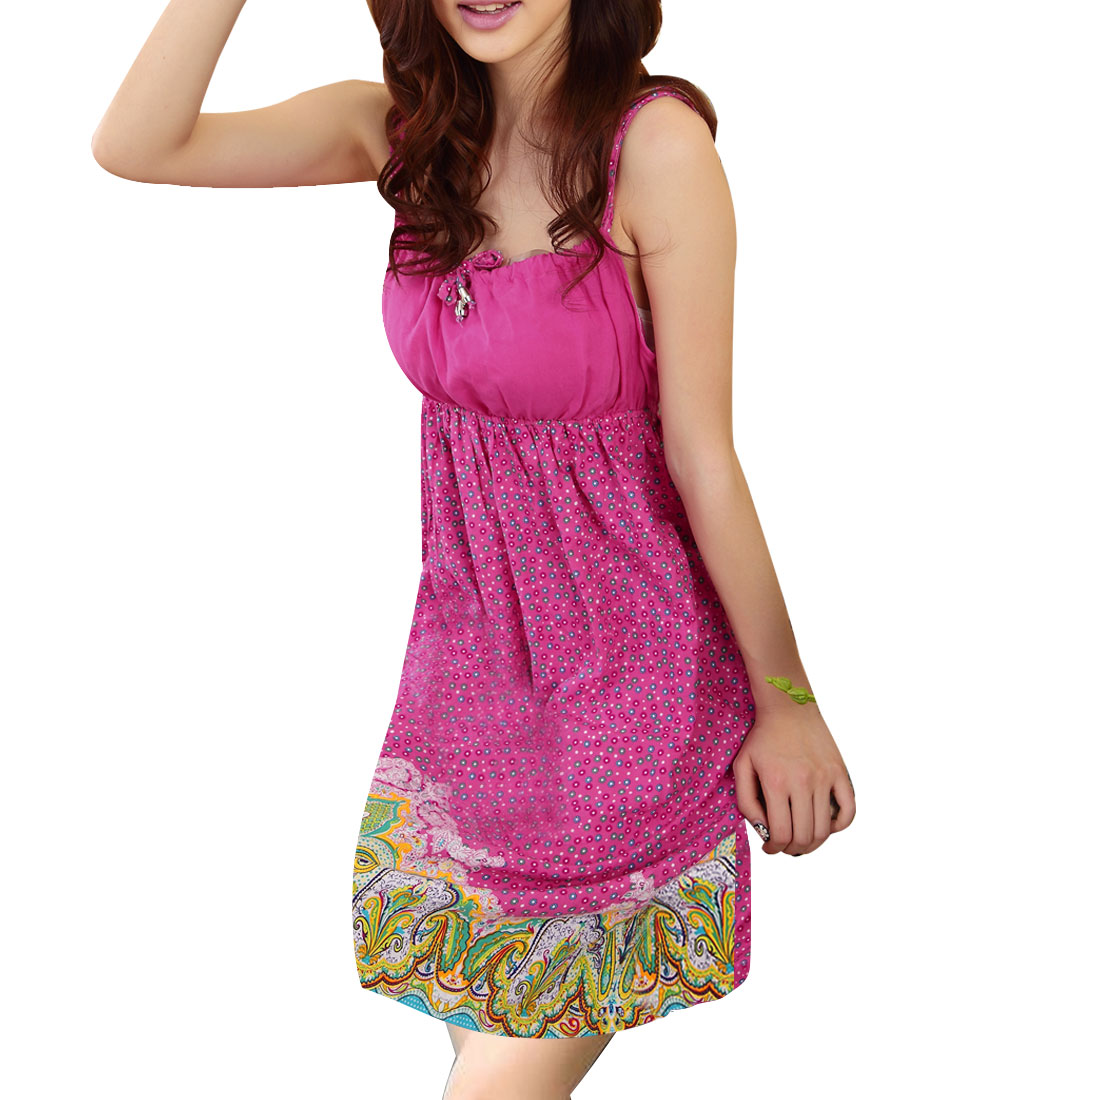 0405 Ladies Colorful Paisley Flower Pattern Sleeveless Fuchsia Sleep Dress